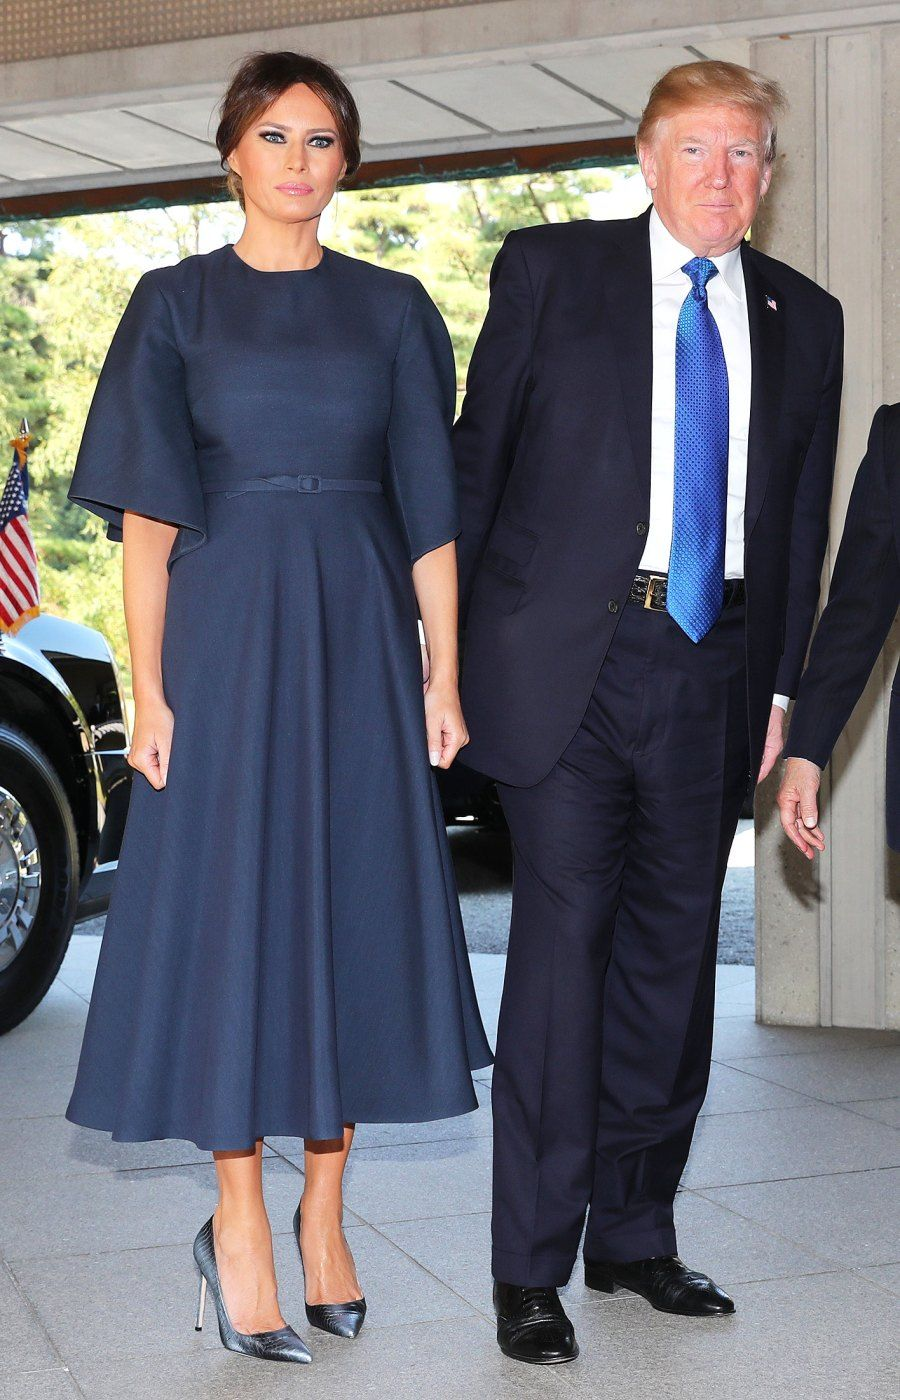 47ca8e7ab96 The #Blue #Dress #Melania #Trump Just #Wore in #Japan #Shows ...